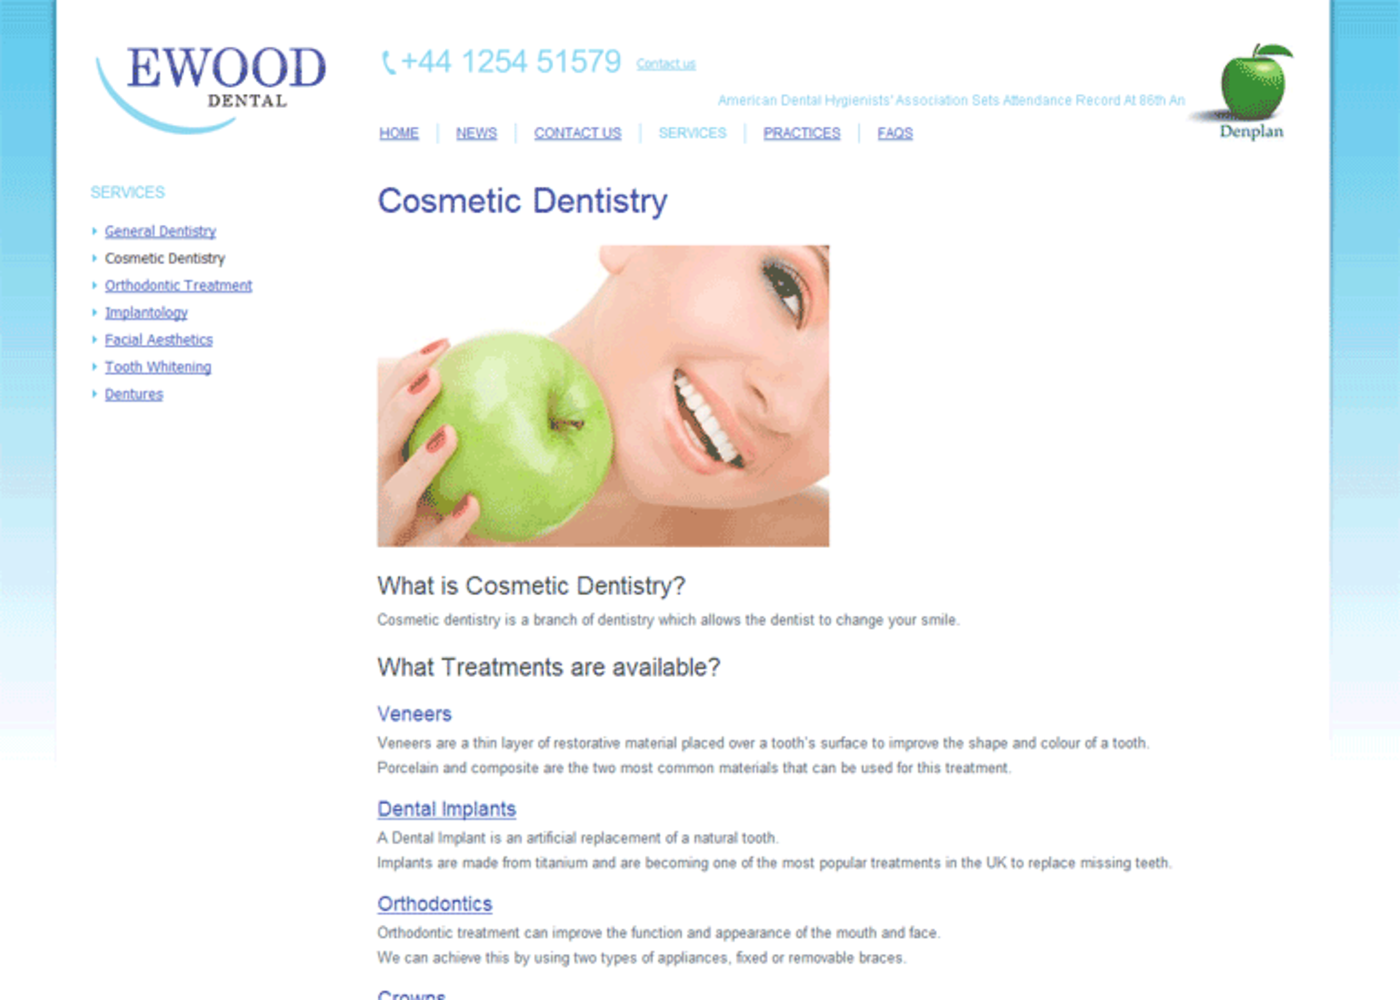 Ewood Dental 2009 Cosmetic Dentistry